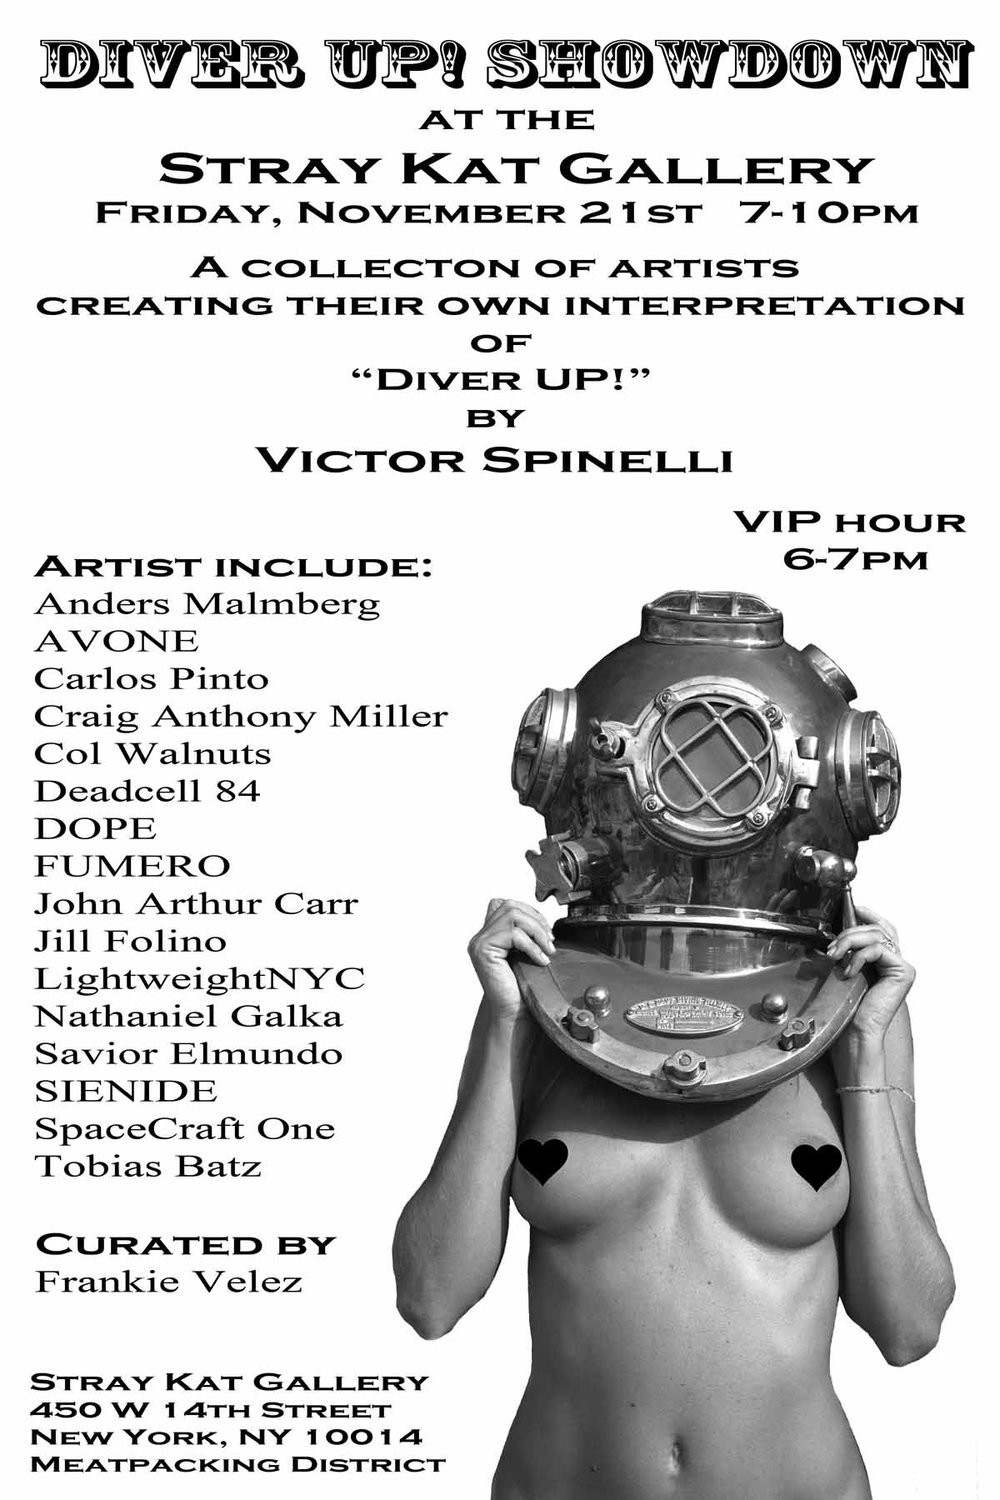 "STOP PRESS.  I am extremely honored that Art curator, Frankie Velez originated the idea to have a show centered around 16 other artists to create their own interpretation of my image, ""Diver UP!"". This bang out event,  ""Diver UP! Showdown""  will happen in NYC's famed Meatpacking District at the Stray Kat Gallery on November 21st, 2014.  450 W 14th and the Highline (10th Ave). Hope to see you there!"